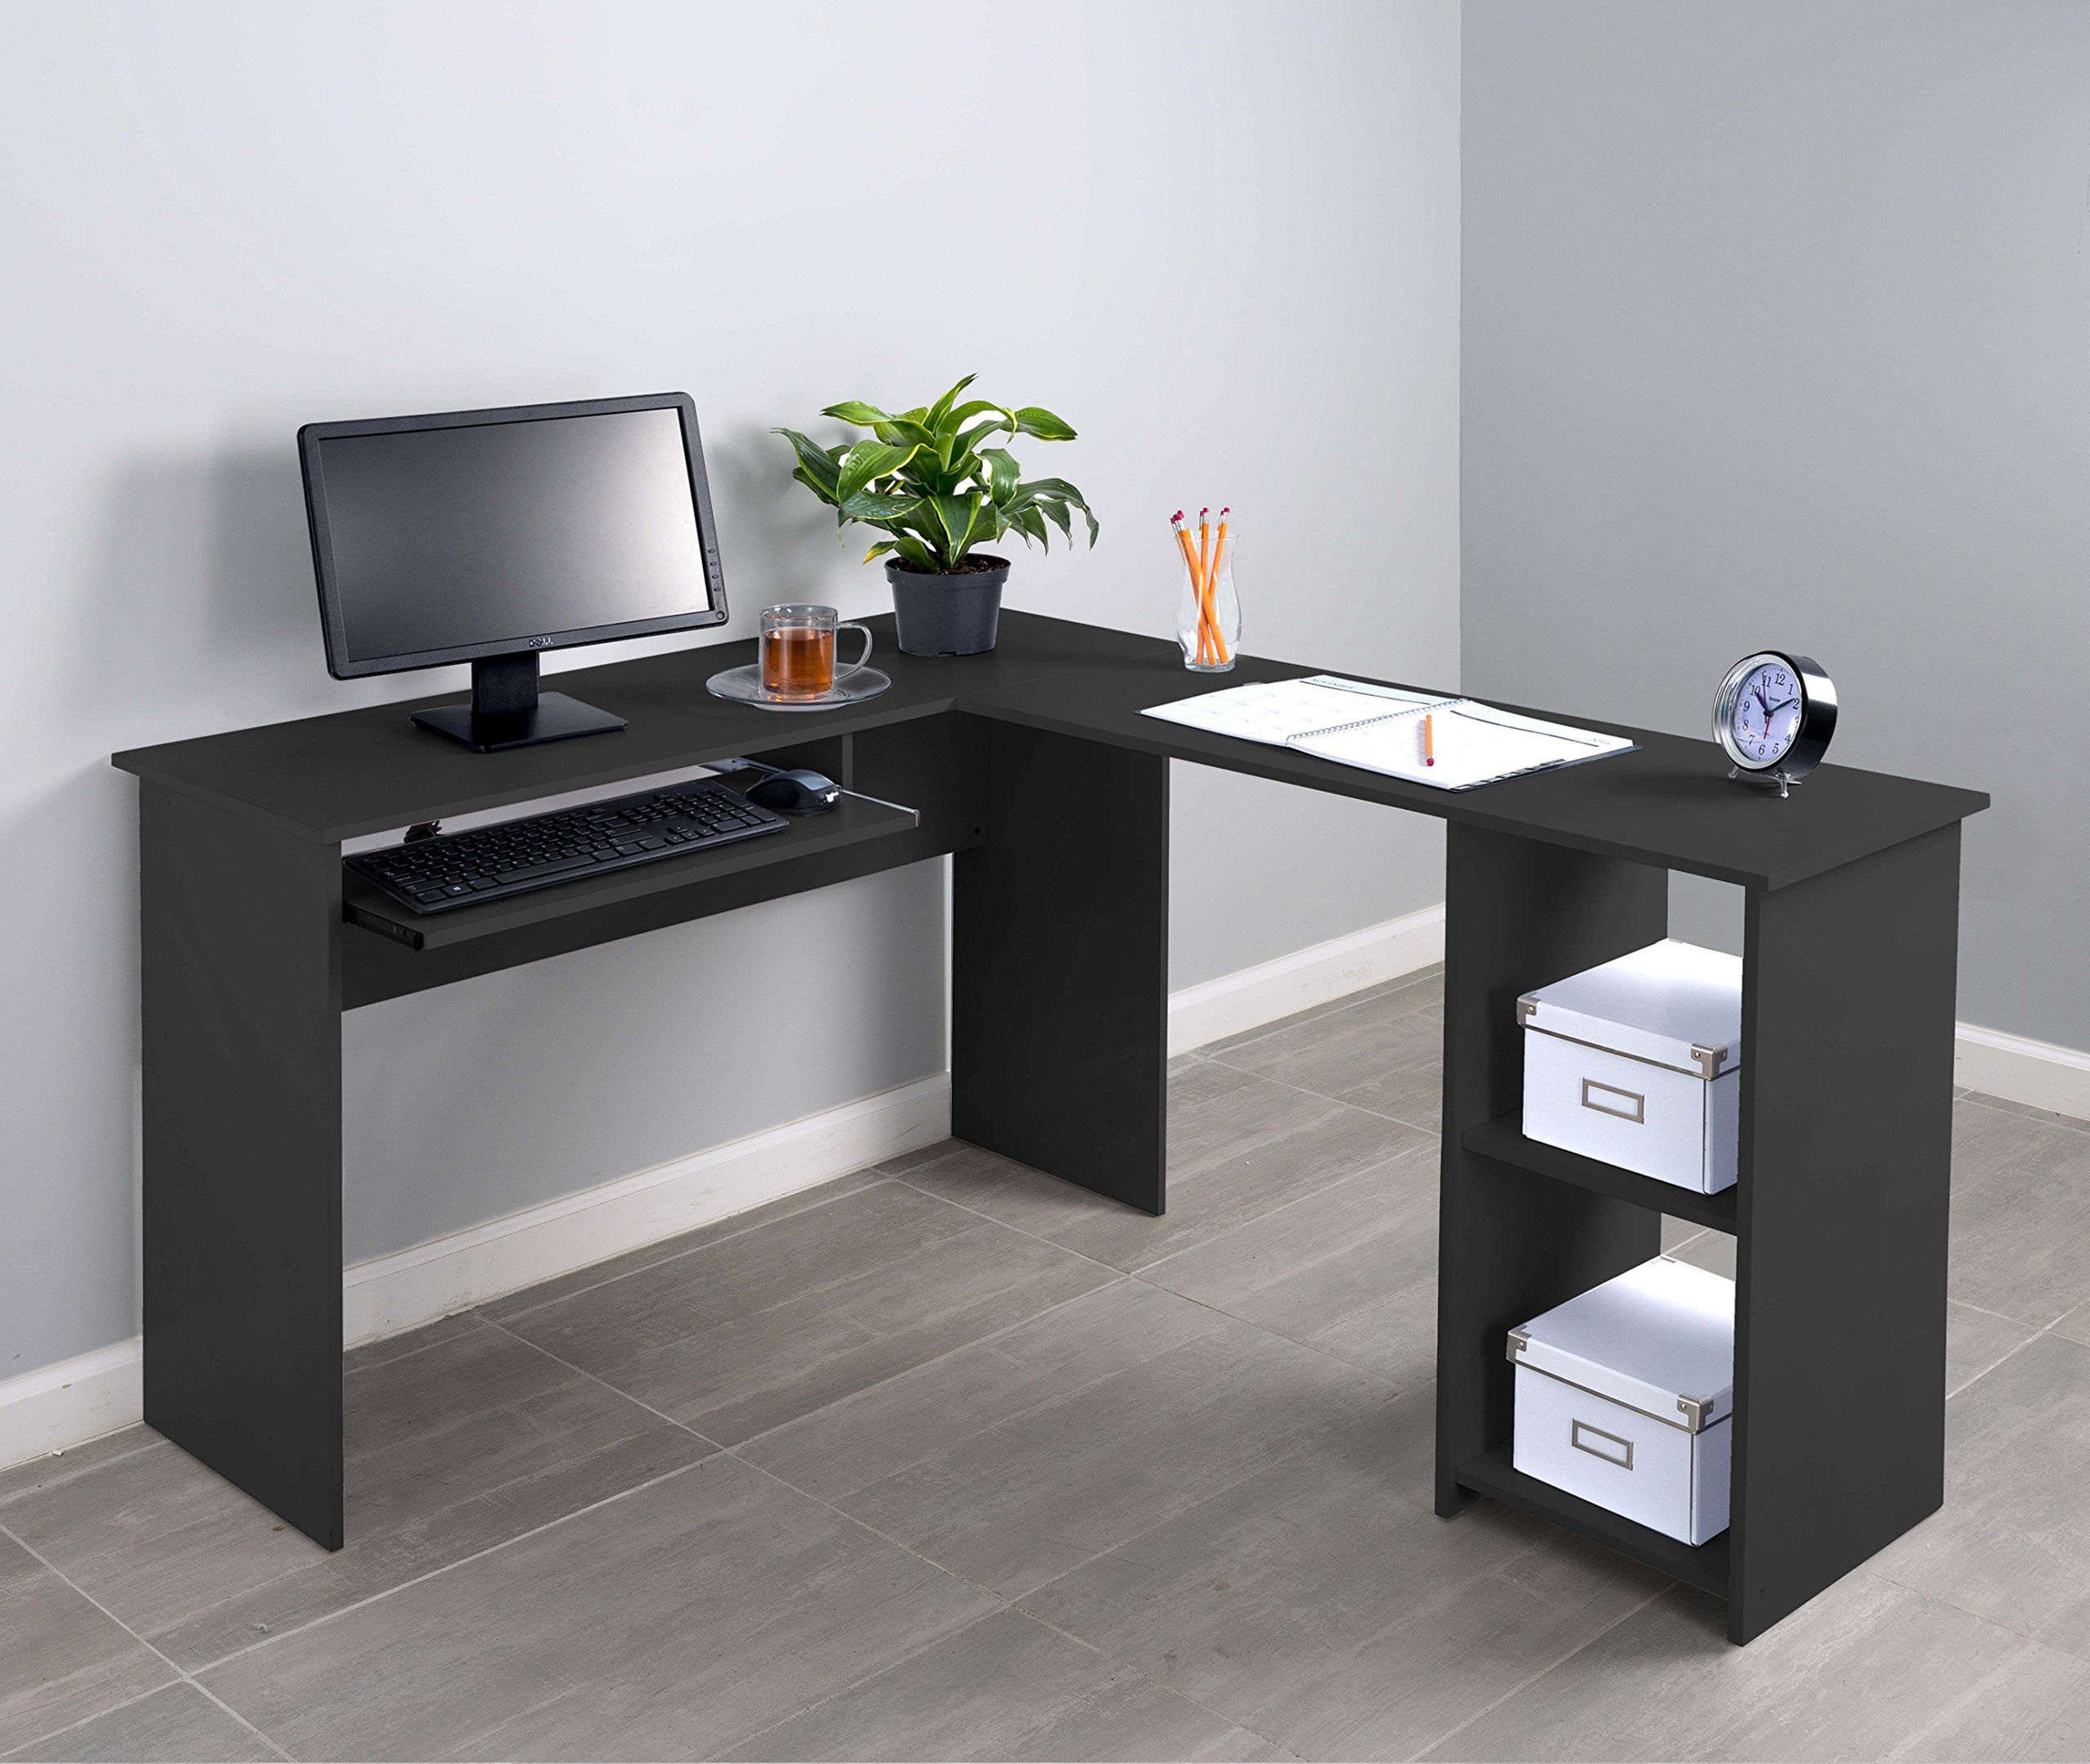 Fineboard Lshaped Office Corner Desk 2 Side Shelves Black Click Image For More Details It Is Amazon L Shaped Desk Desks For Small Spaces Corner Desk Office